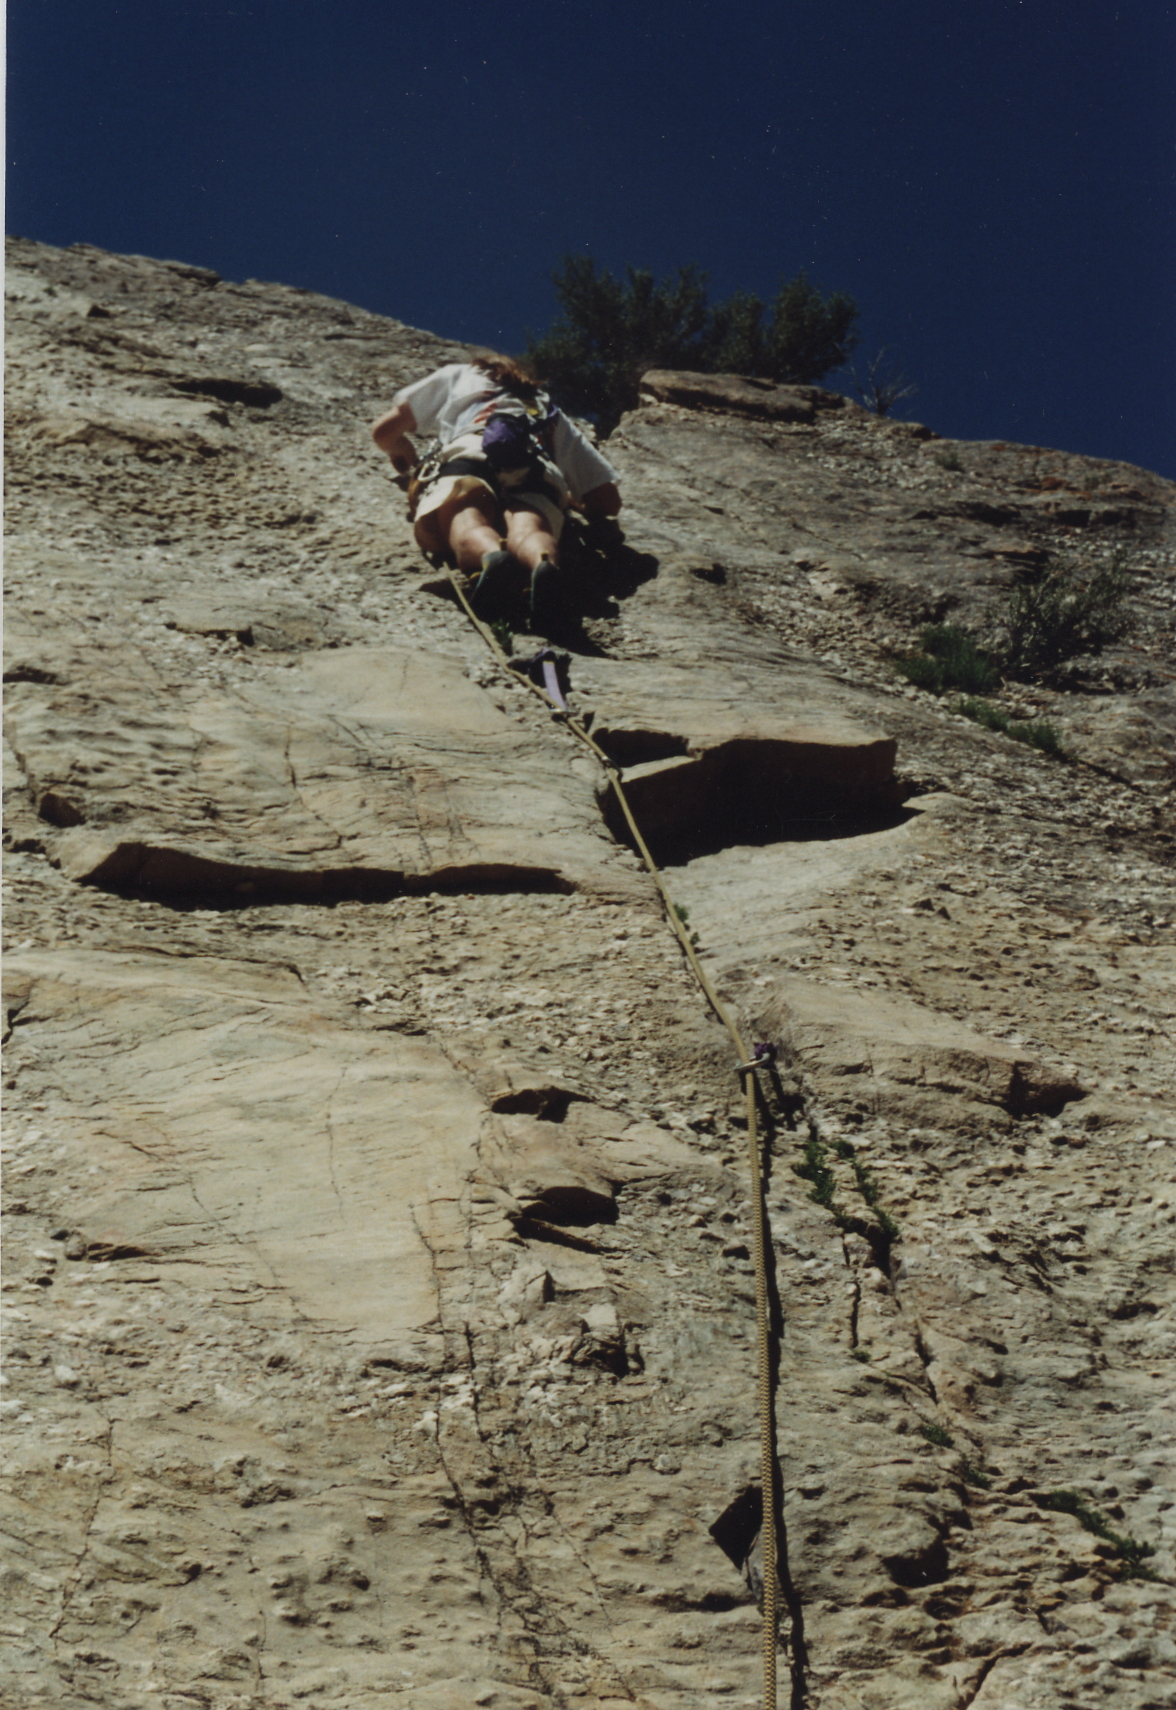 Photo of a climber leading up a wall, placing gear, rope below him.